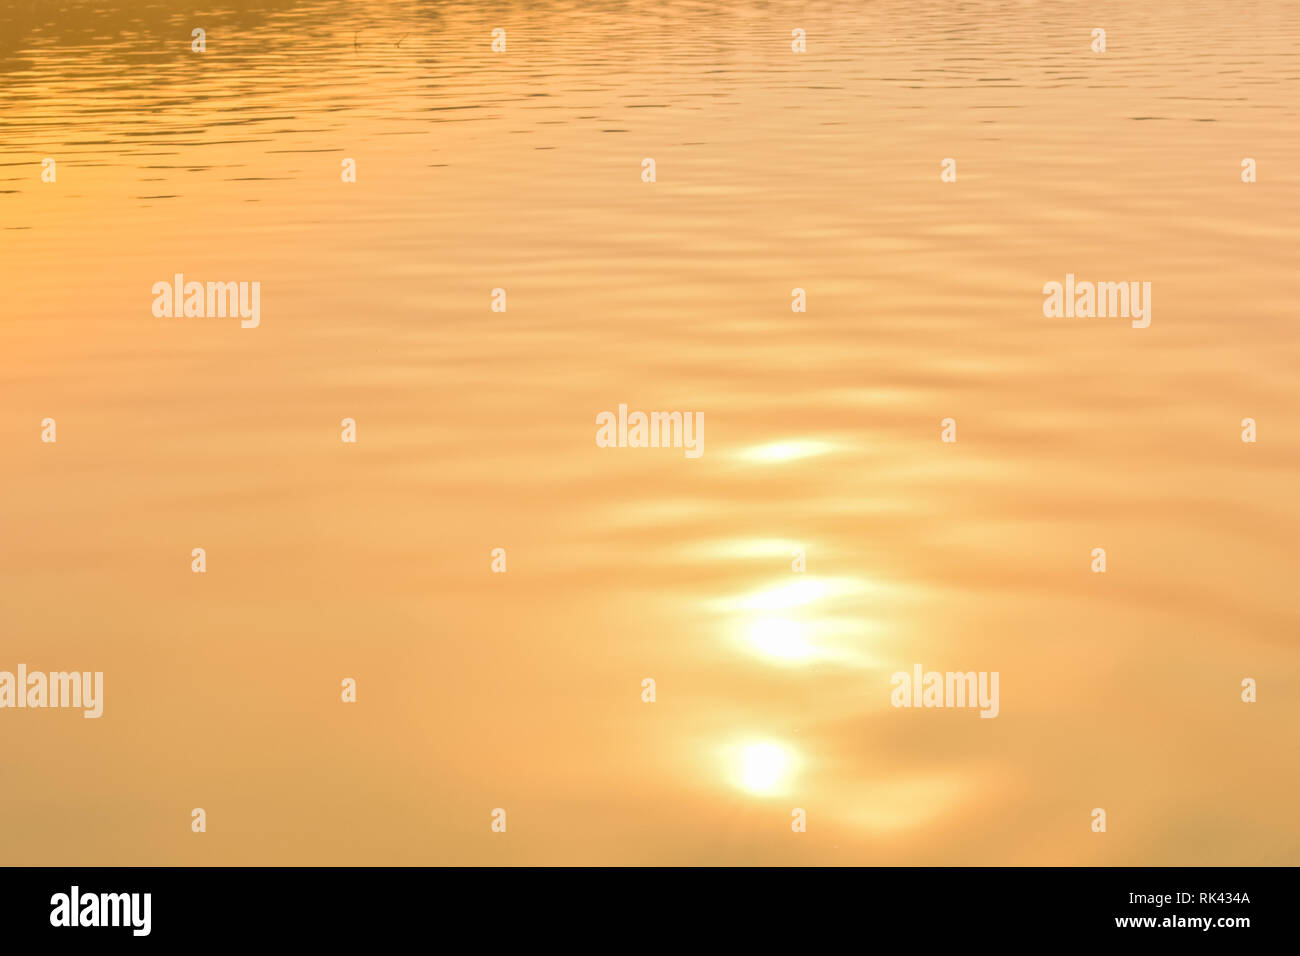 Beautiful sunset water background. The waves on the surface of the river. At twilight times and reflections. Golden and orange colors in the waves. - Stock Image